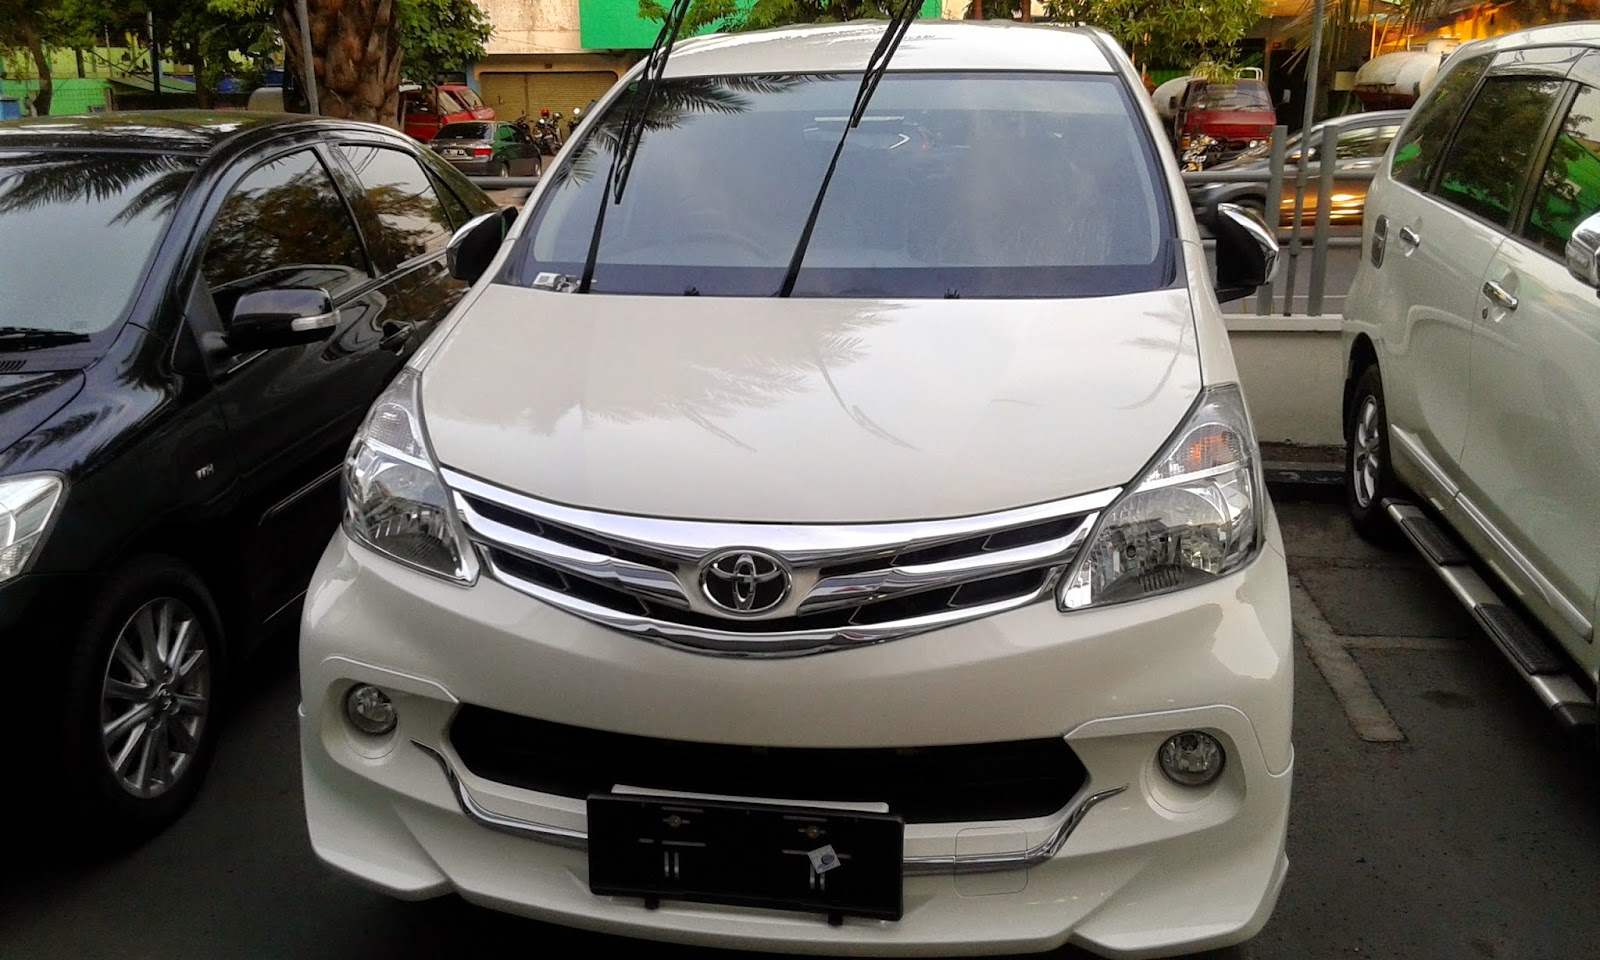 Forum Grand New Avanza All Toyota Camry 2020 Harga 2015 Desaign Baru Release